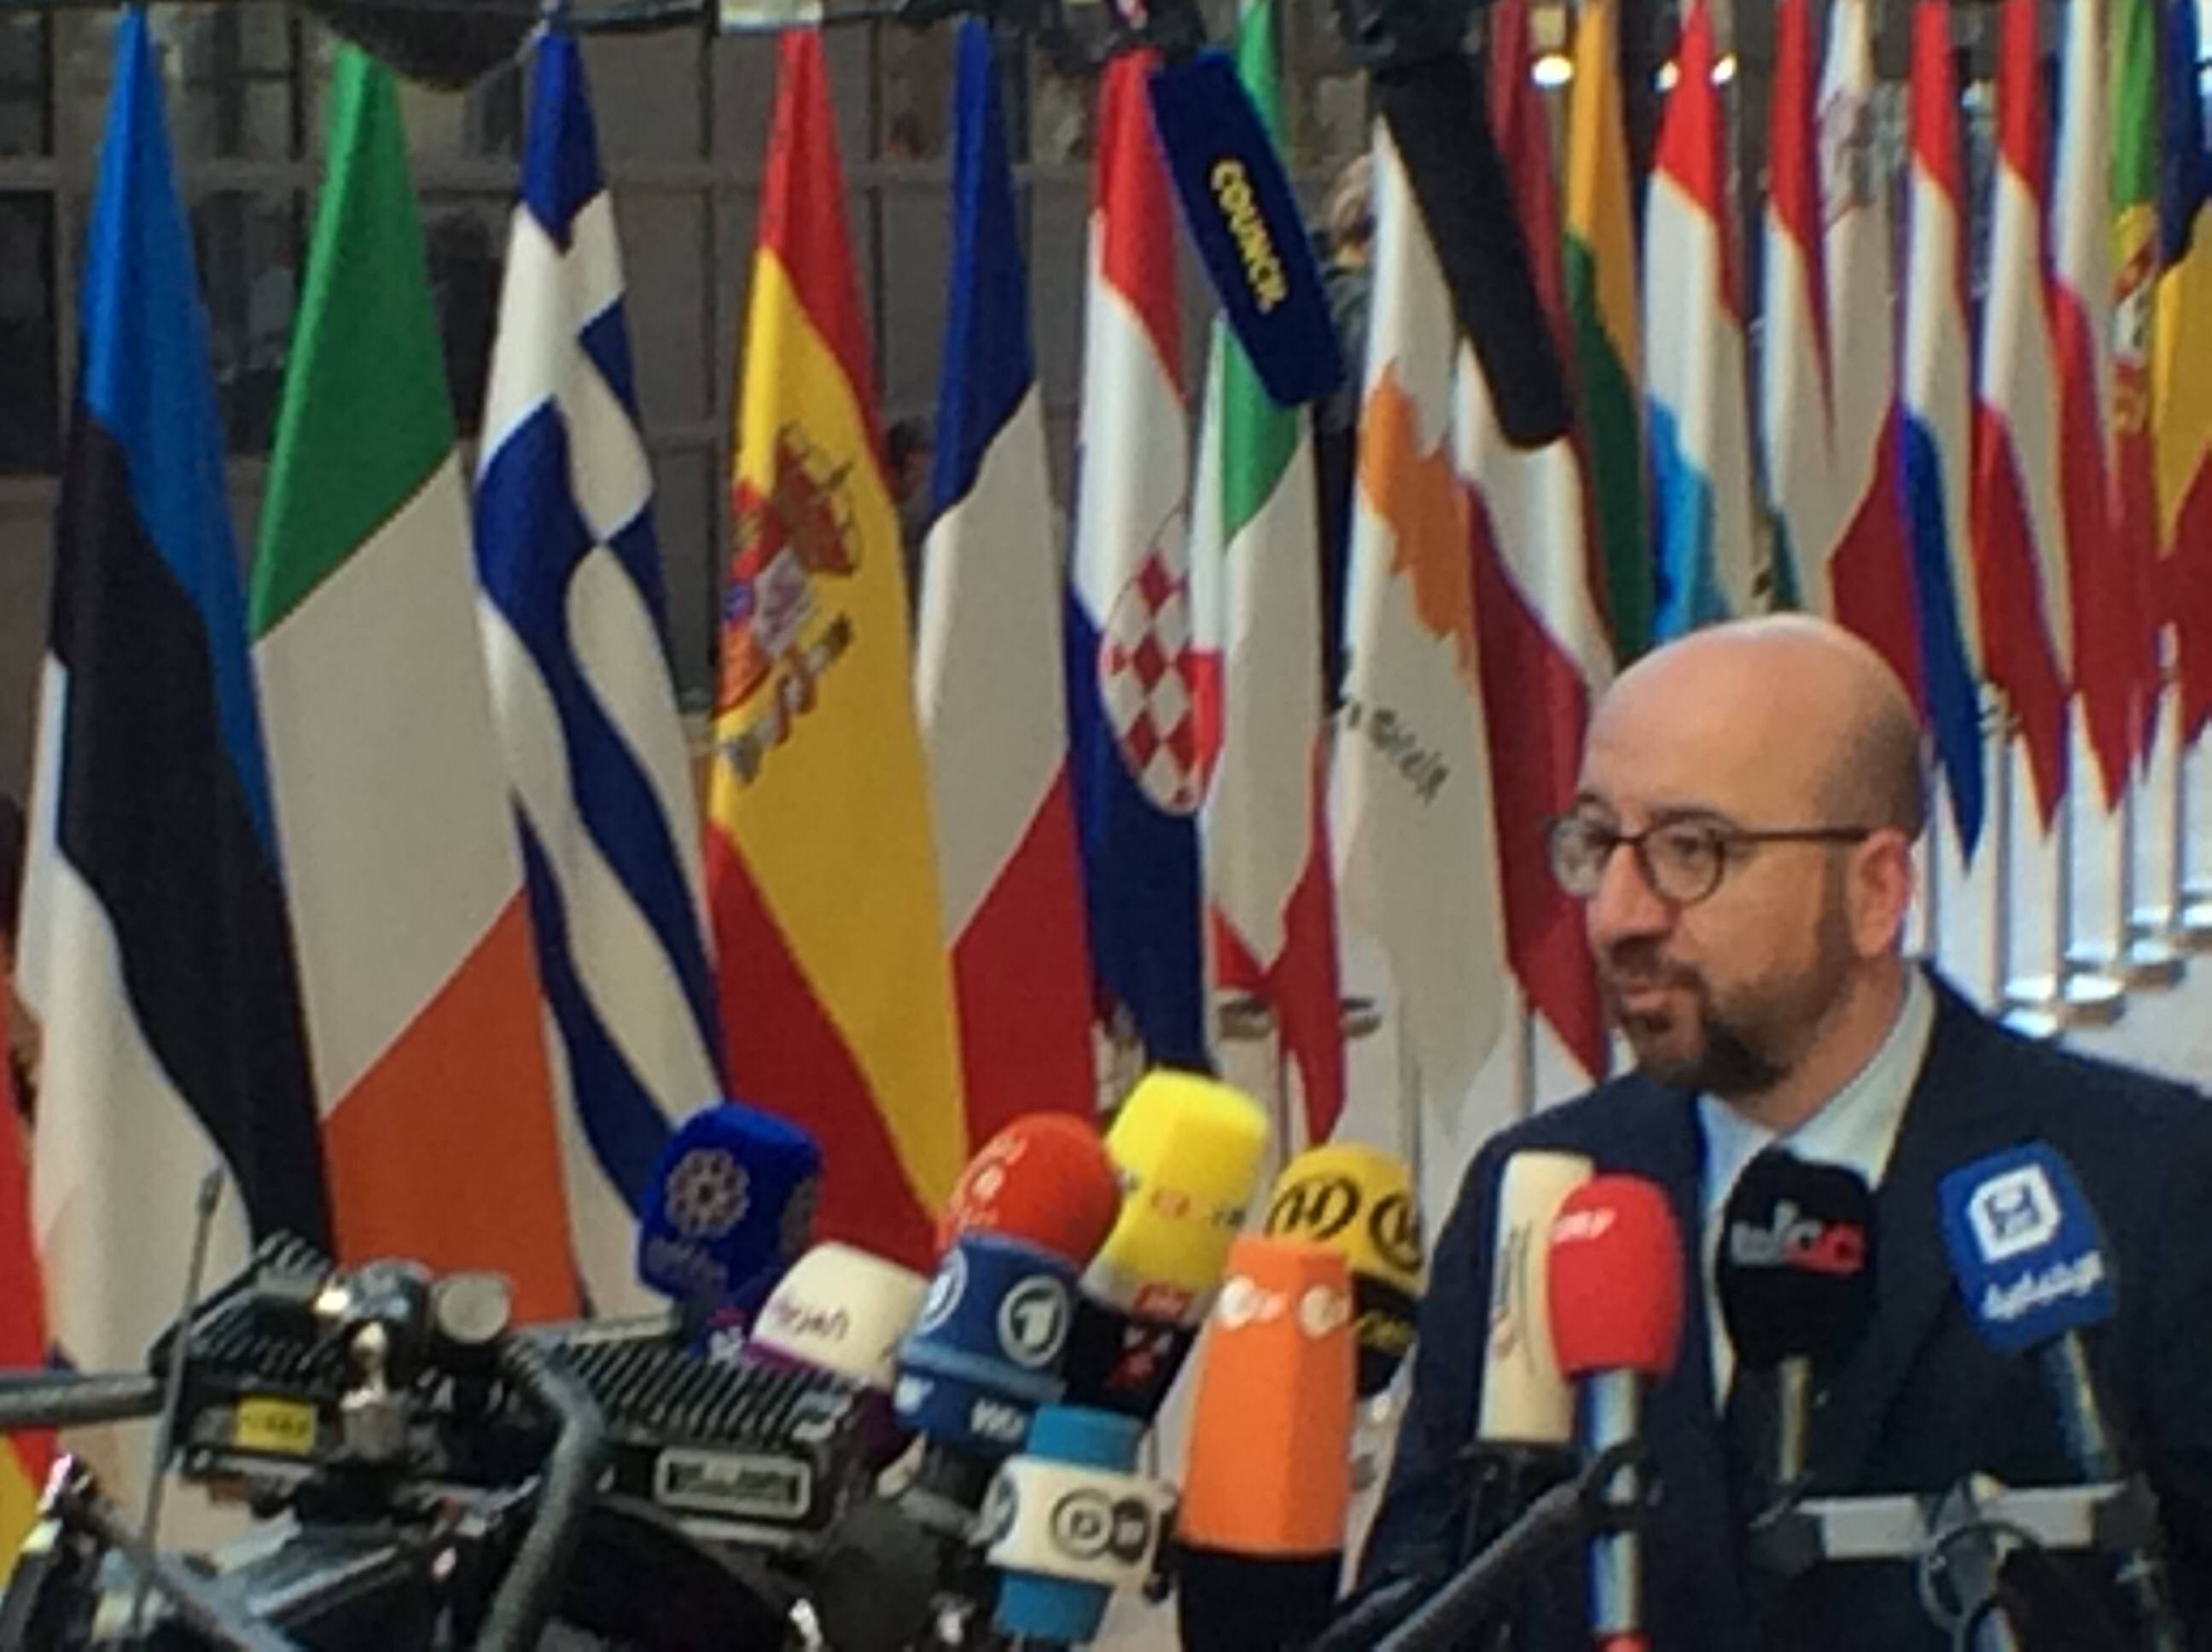 #EUCO: Charles Michel chairs EU Summit